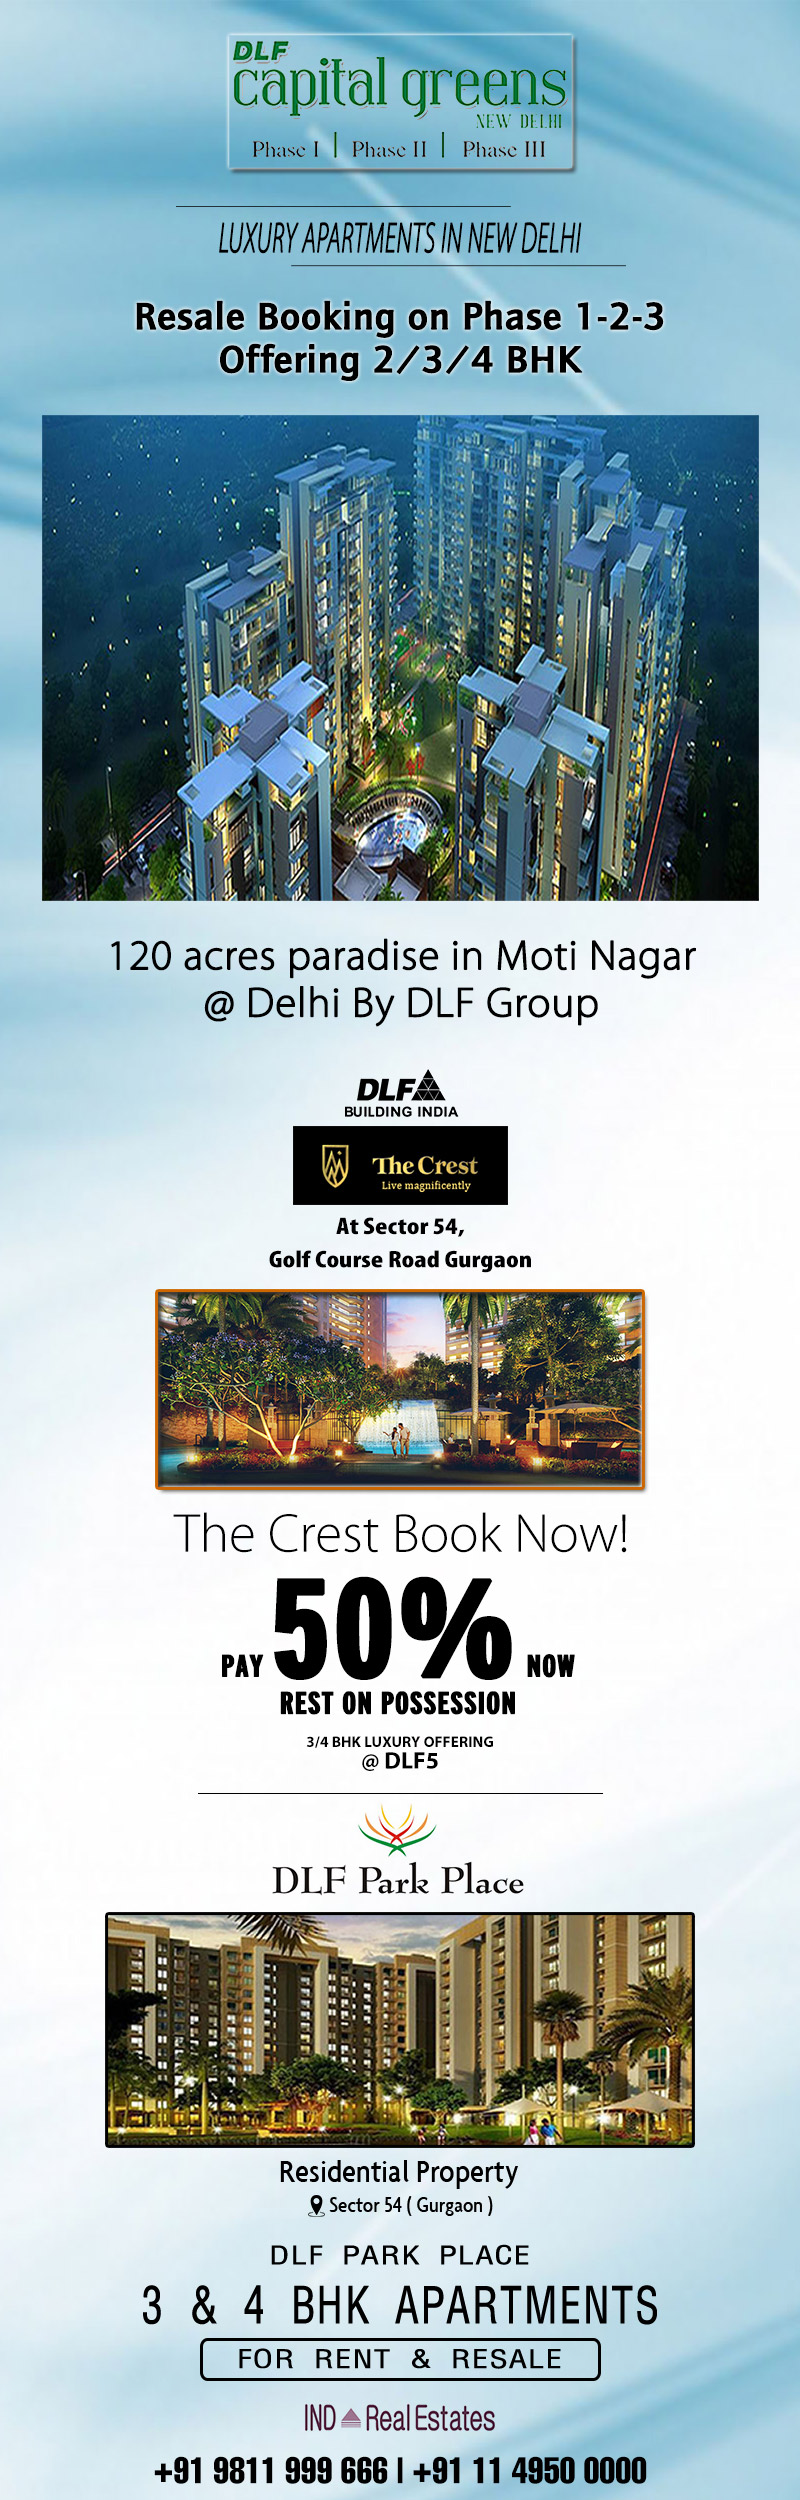 DLF Projects